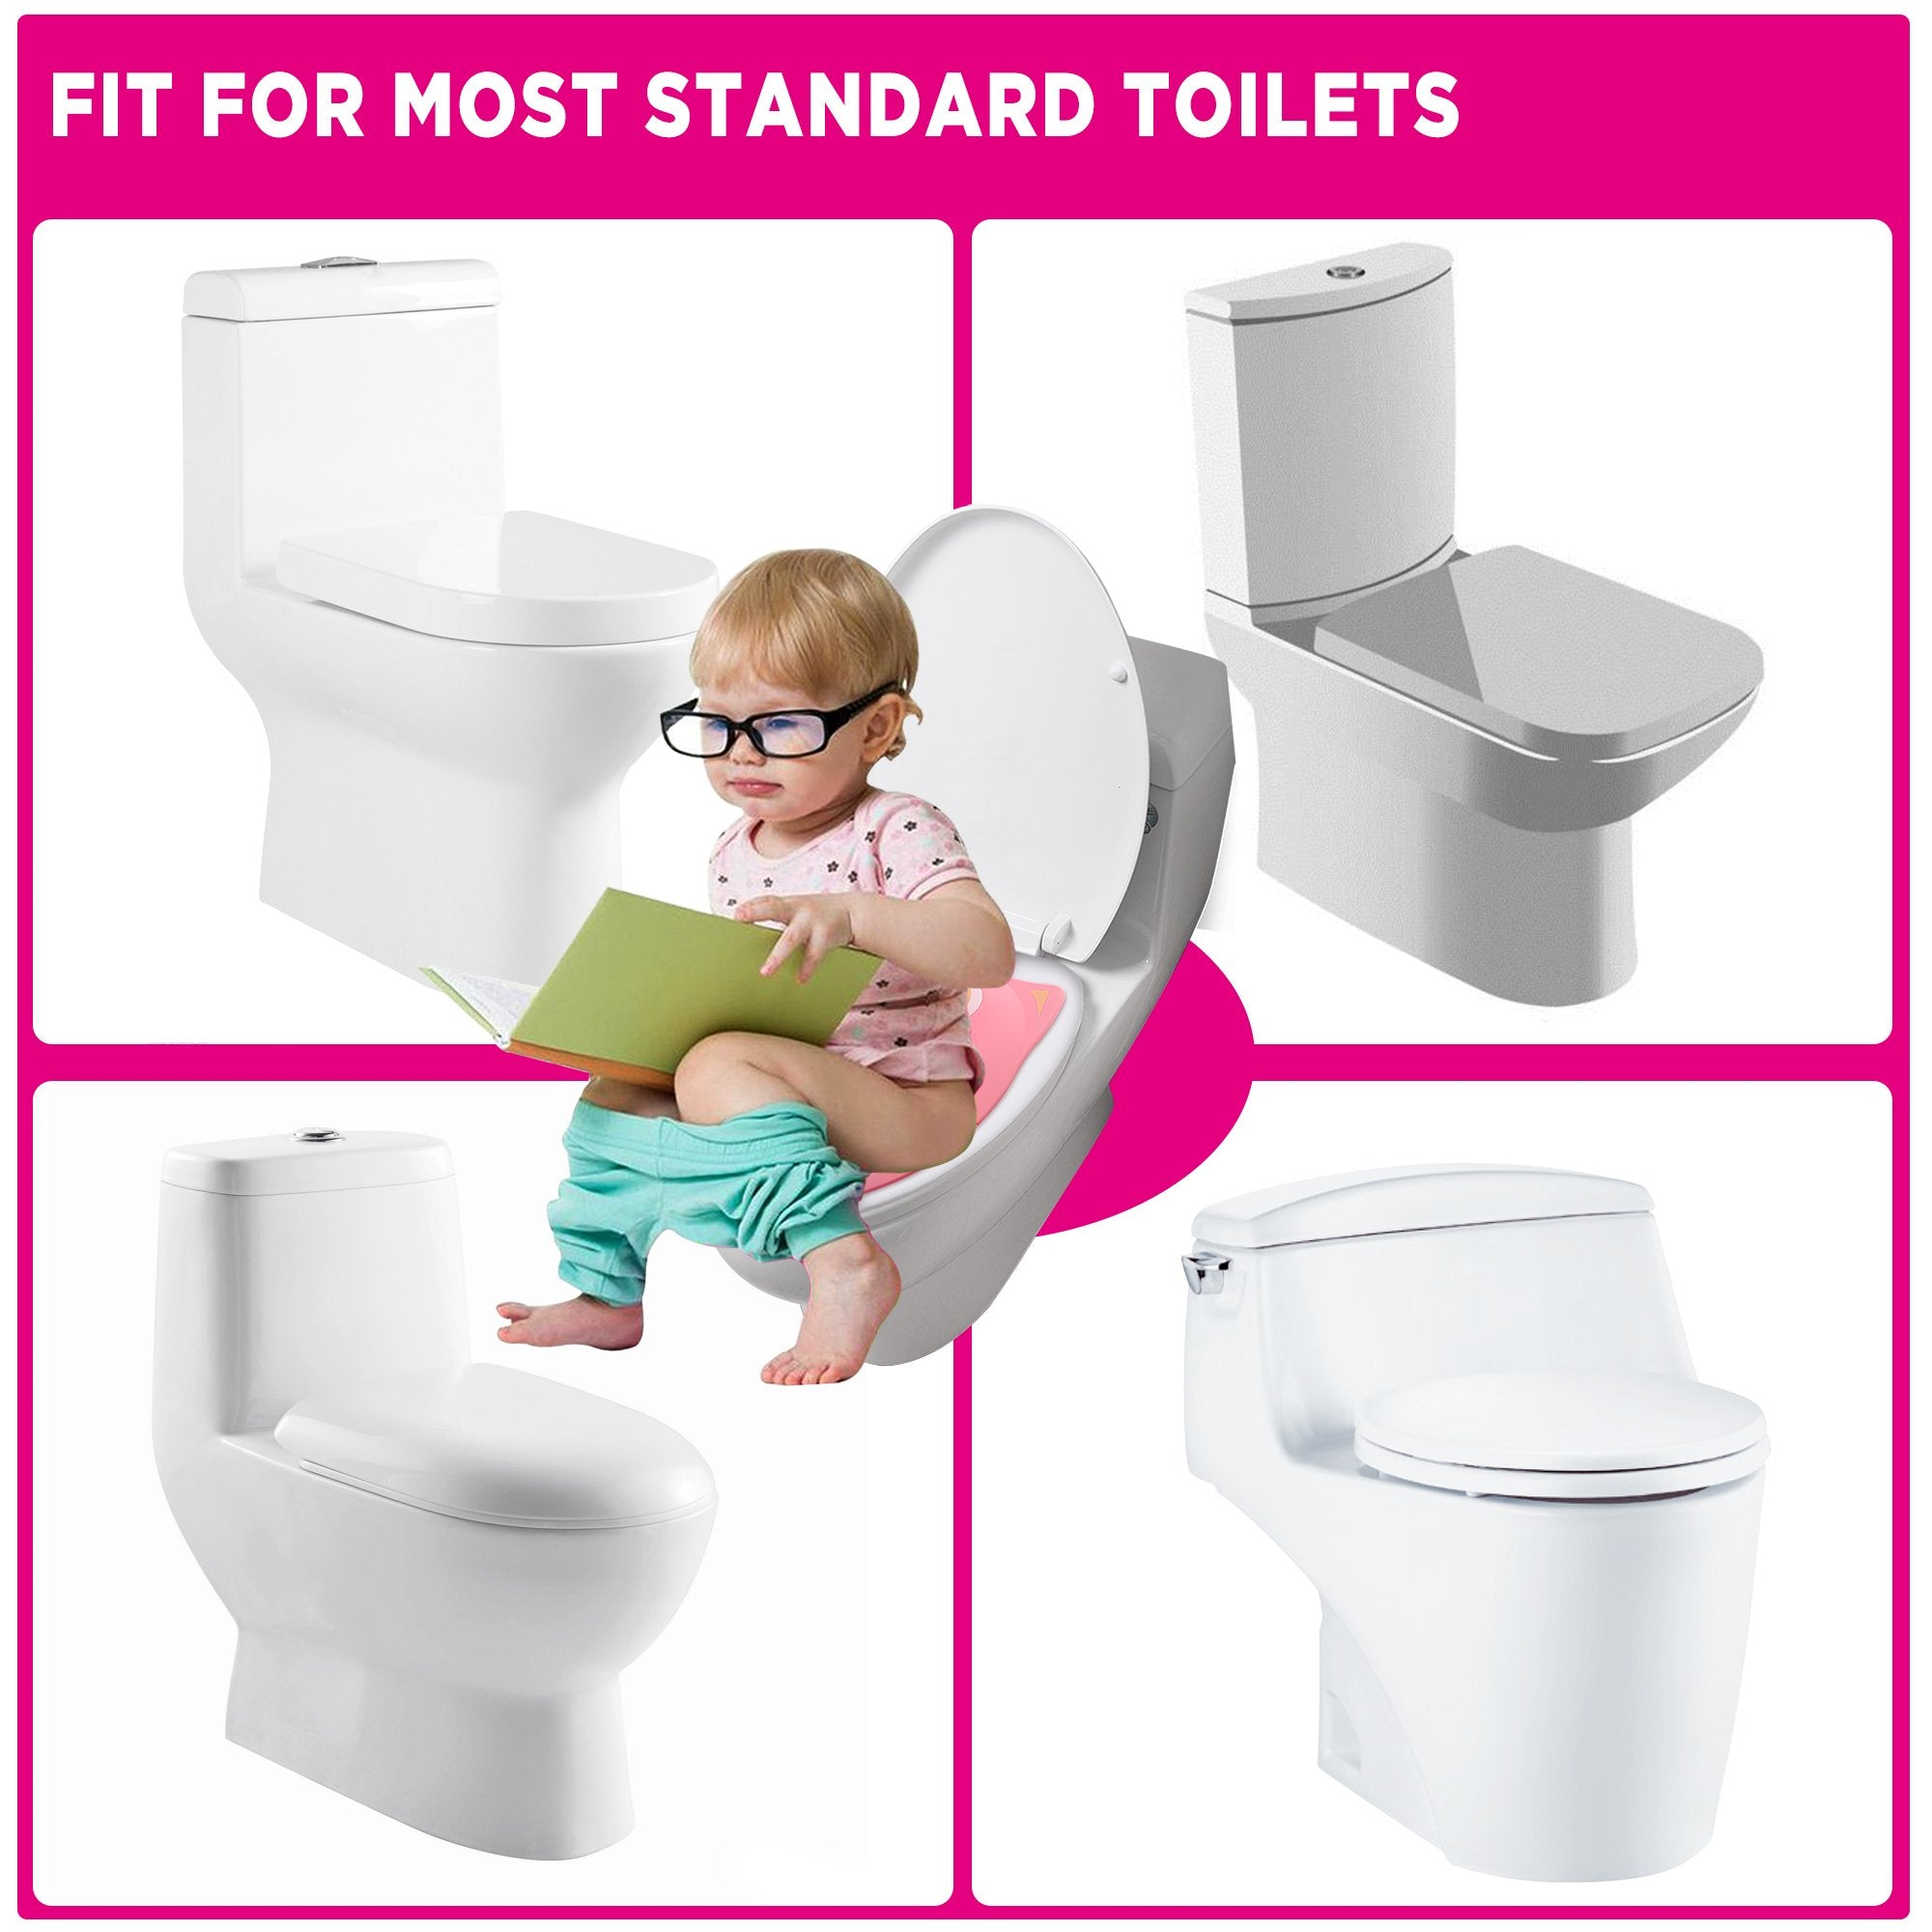 Wondrous Gimars Upgrade Folding Large Non Slip Silicone Pads Travel Portable Reusable Toilet Potty Training Seat Covers Liners With Carry Bag For Babies Creativecarmelina Interior Chair Design Creativecarmelinacom